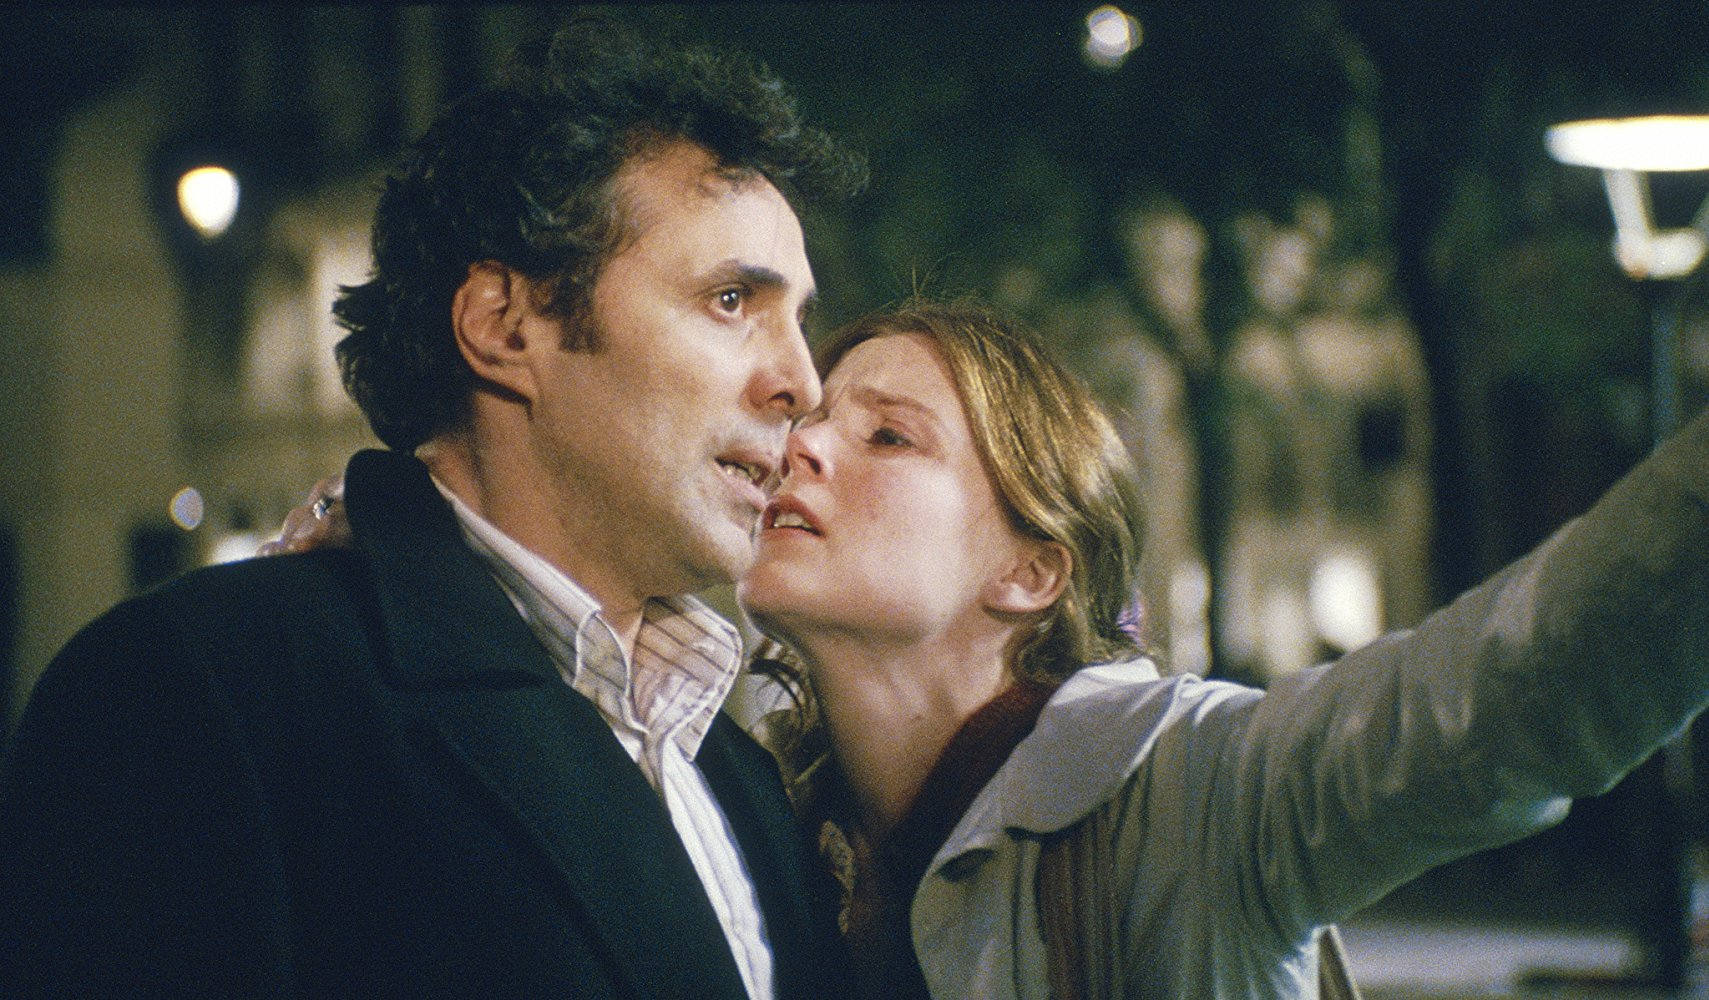 Isabelle Carré and the object of her affection Gilbert Melki in Anna M. (2007)